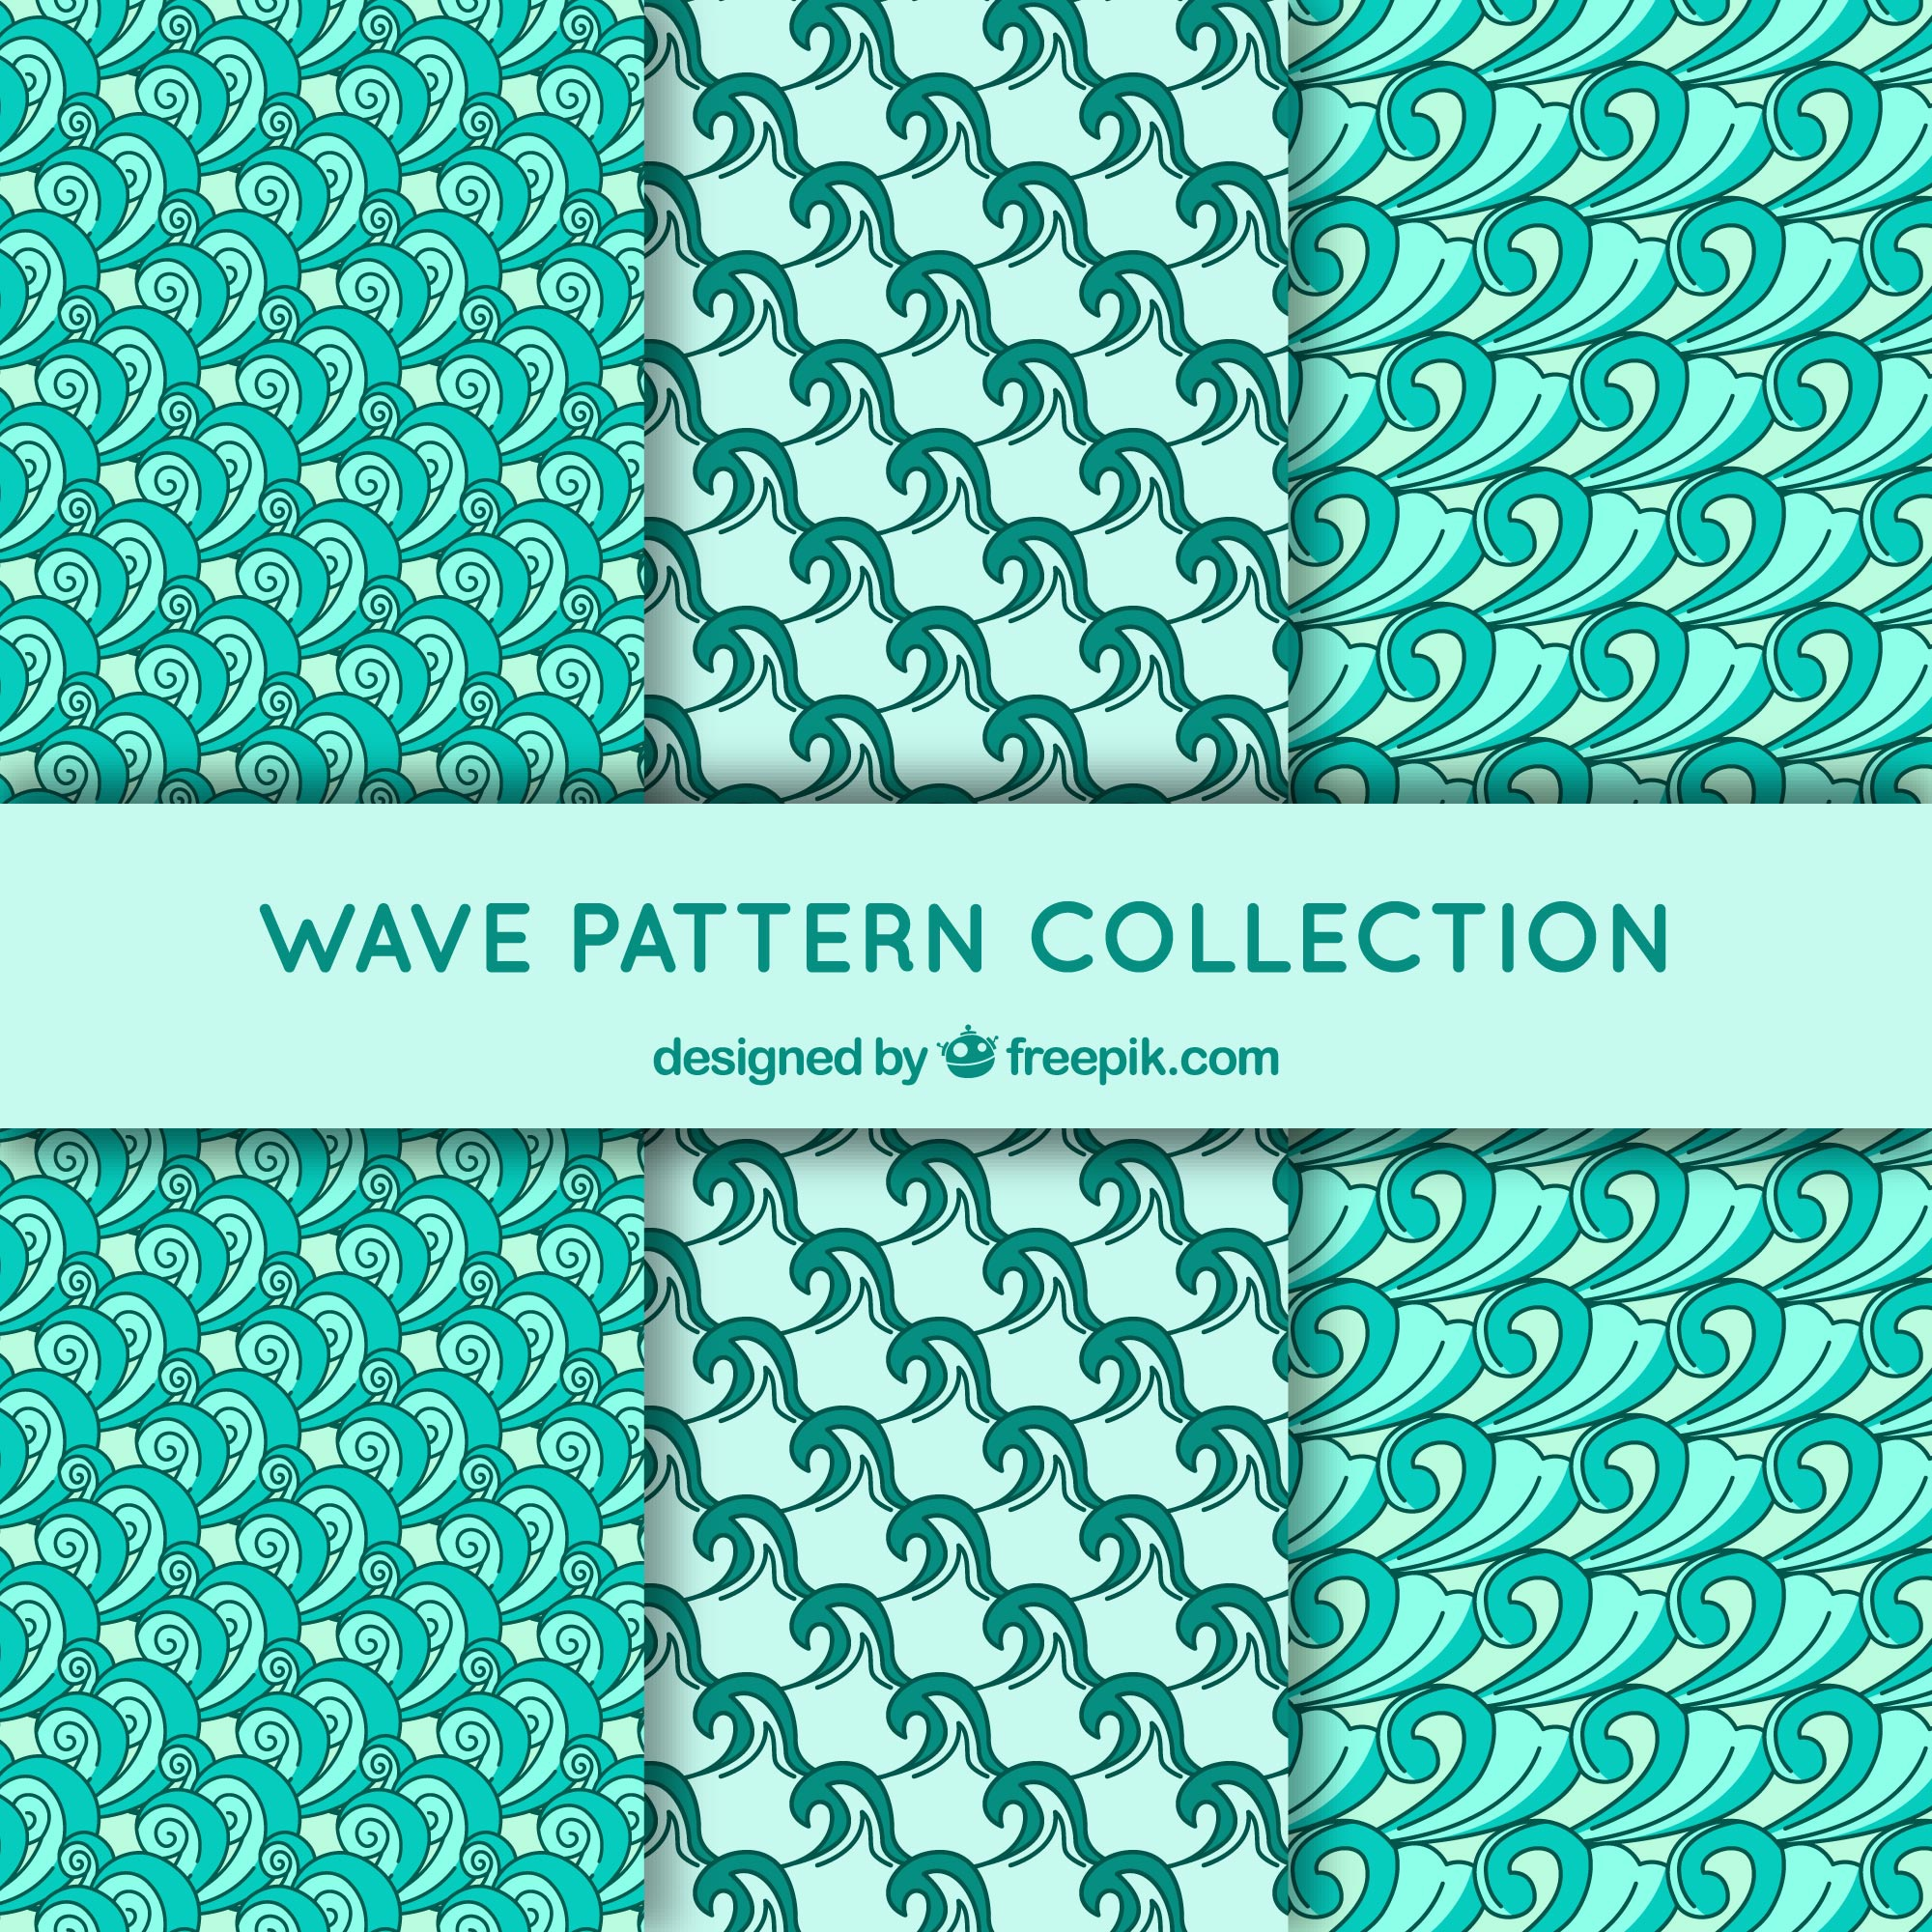 Collection of wave patterns in green tones